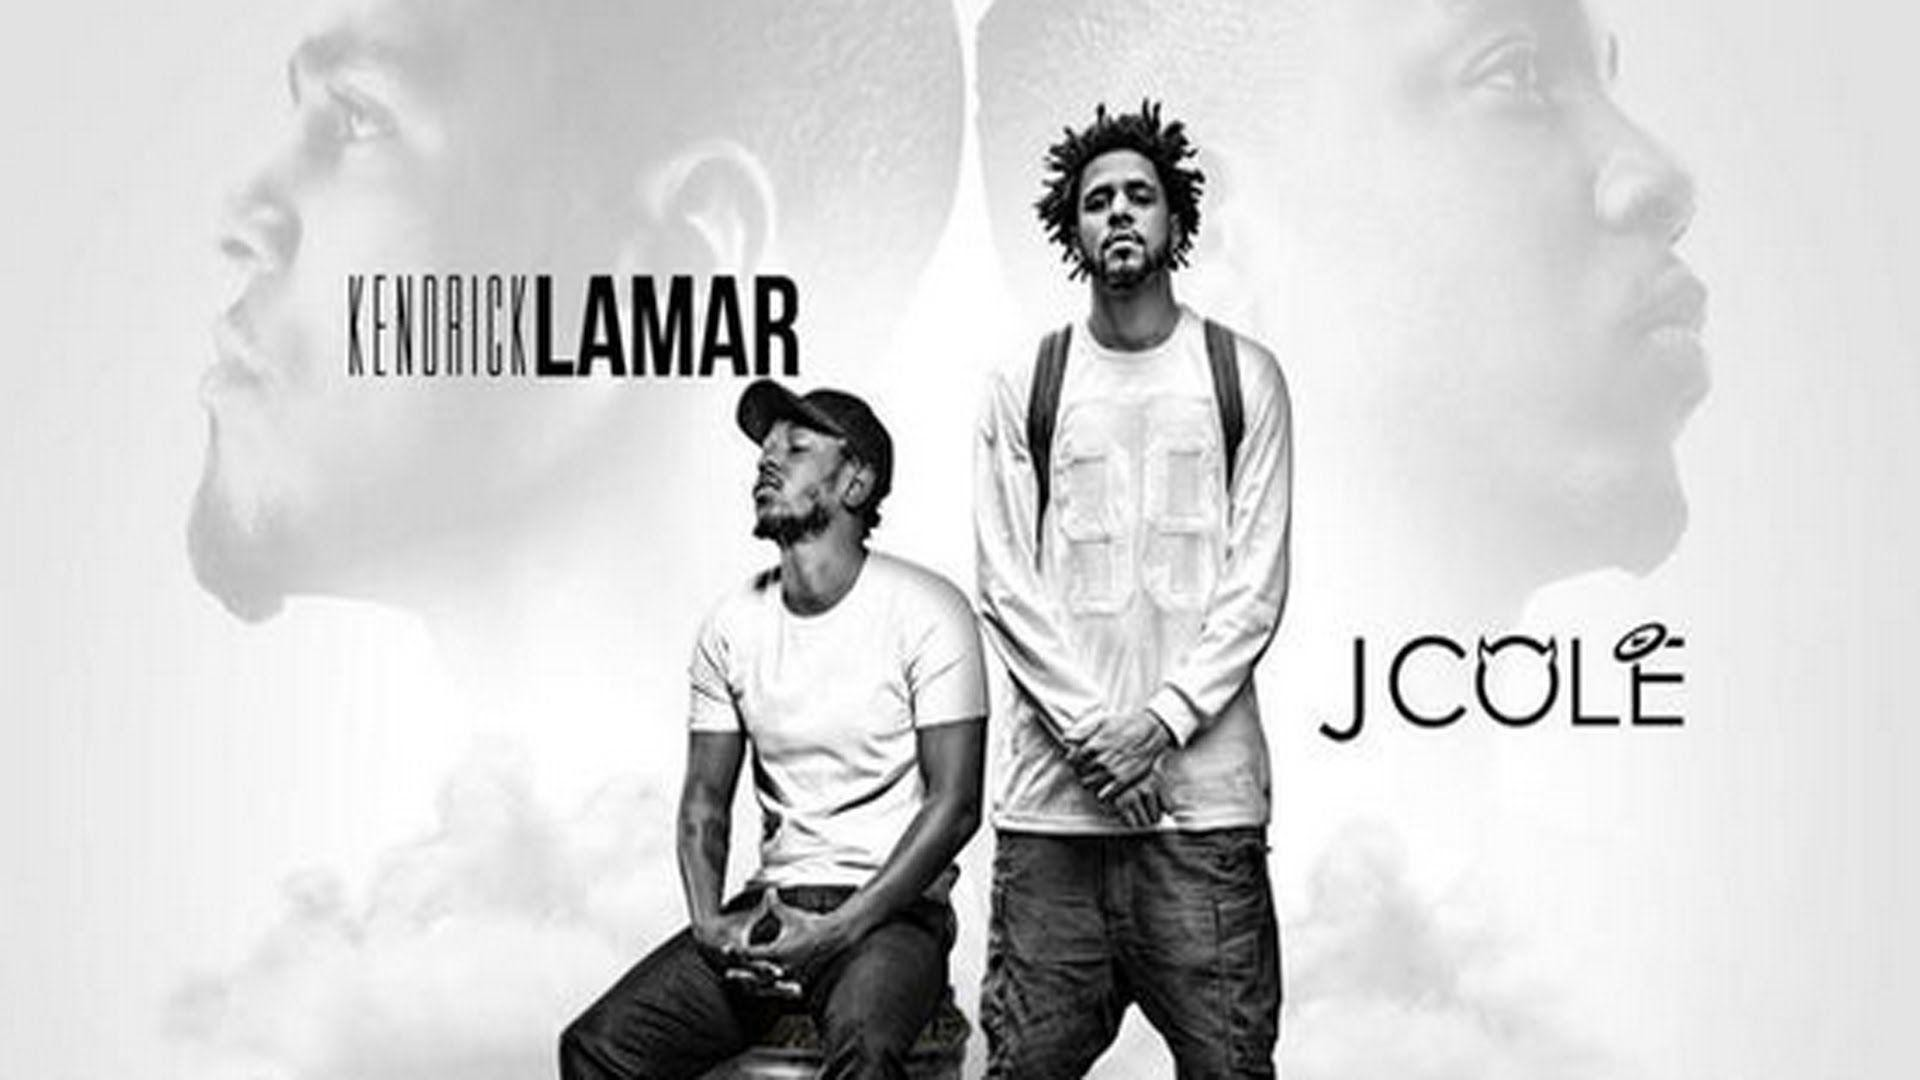 1920x1080 J Cole Wallpapers HD | HD Wallpapers, Backgrounds, Images, Art Photos.